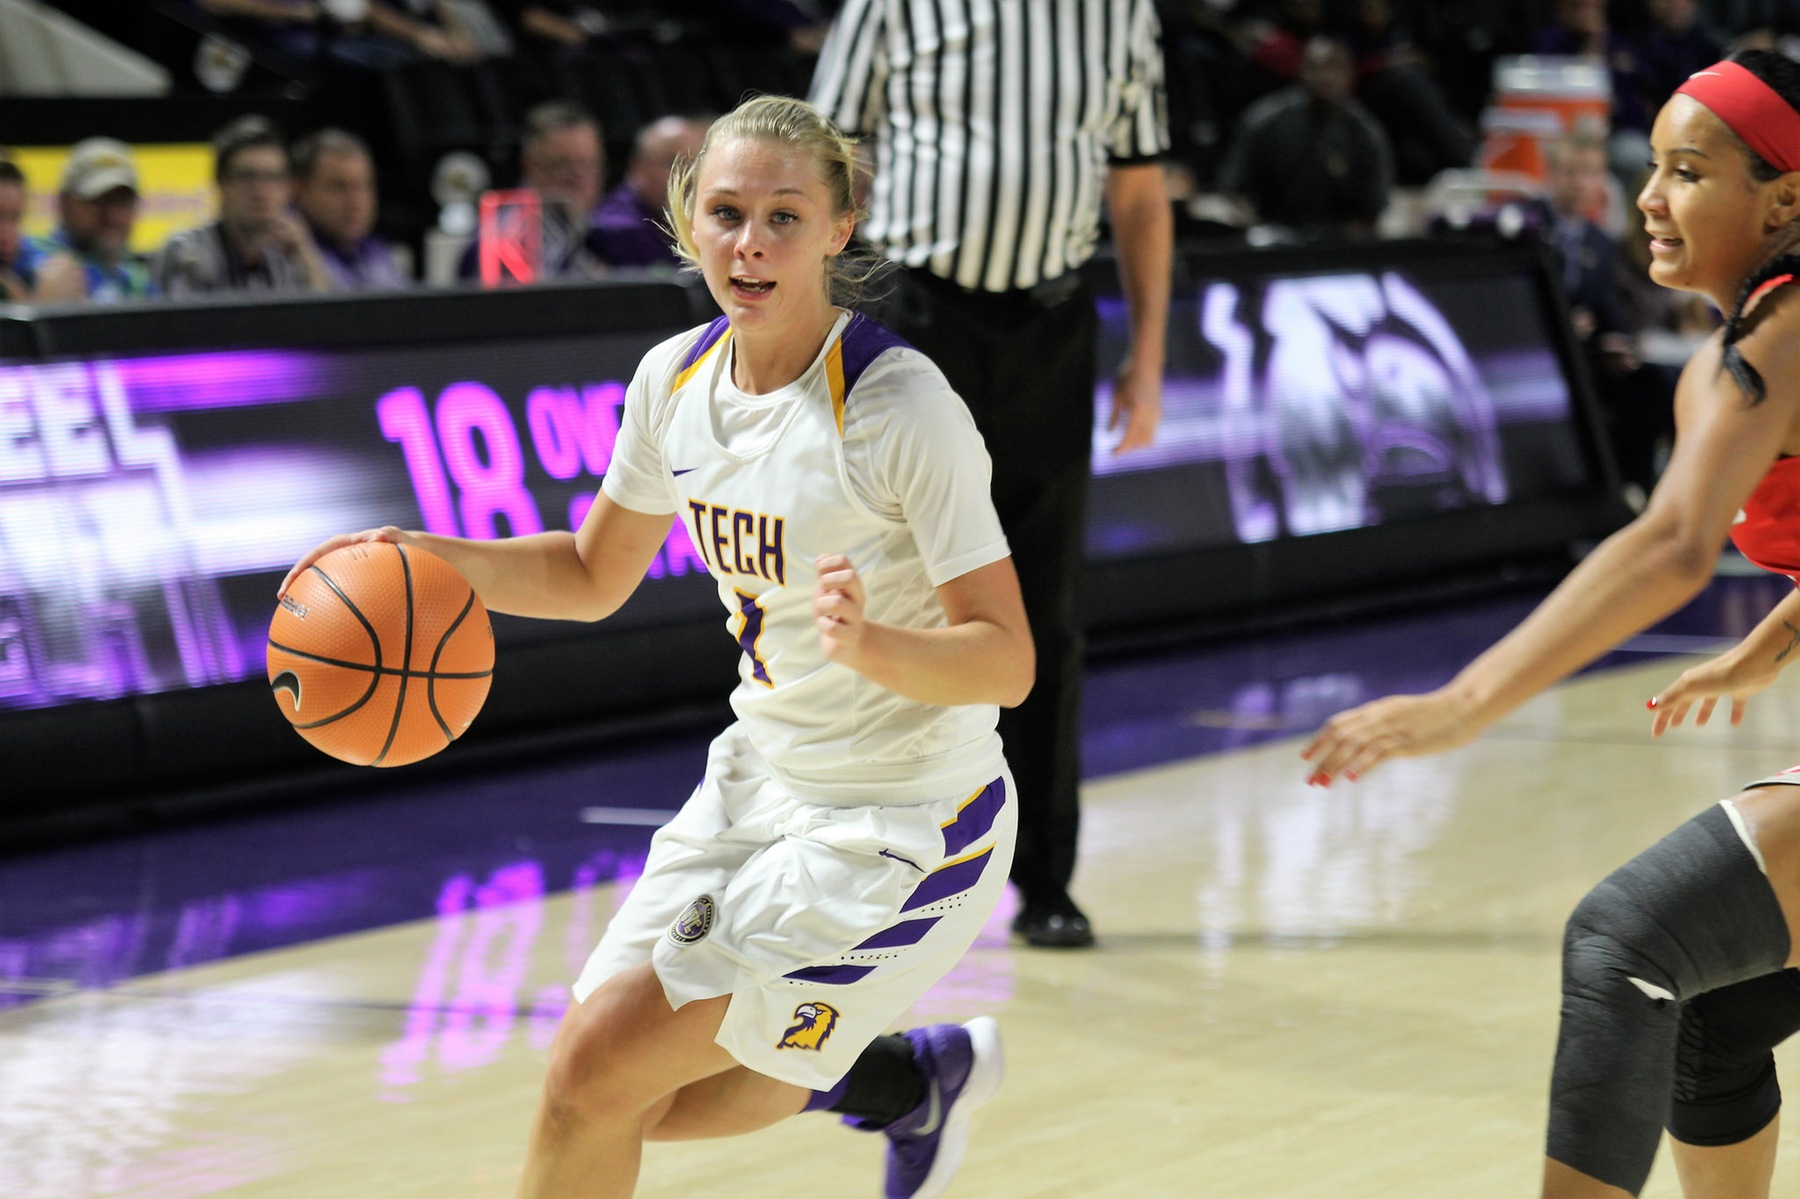 TTU women's basketball to sharpen competitive edge in exhibition with Hiwassee College